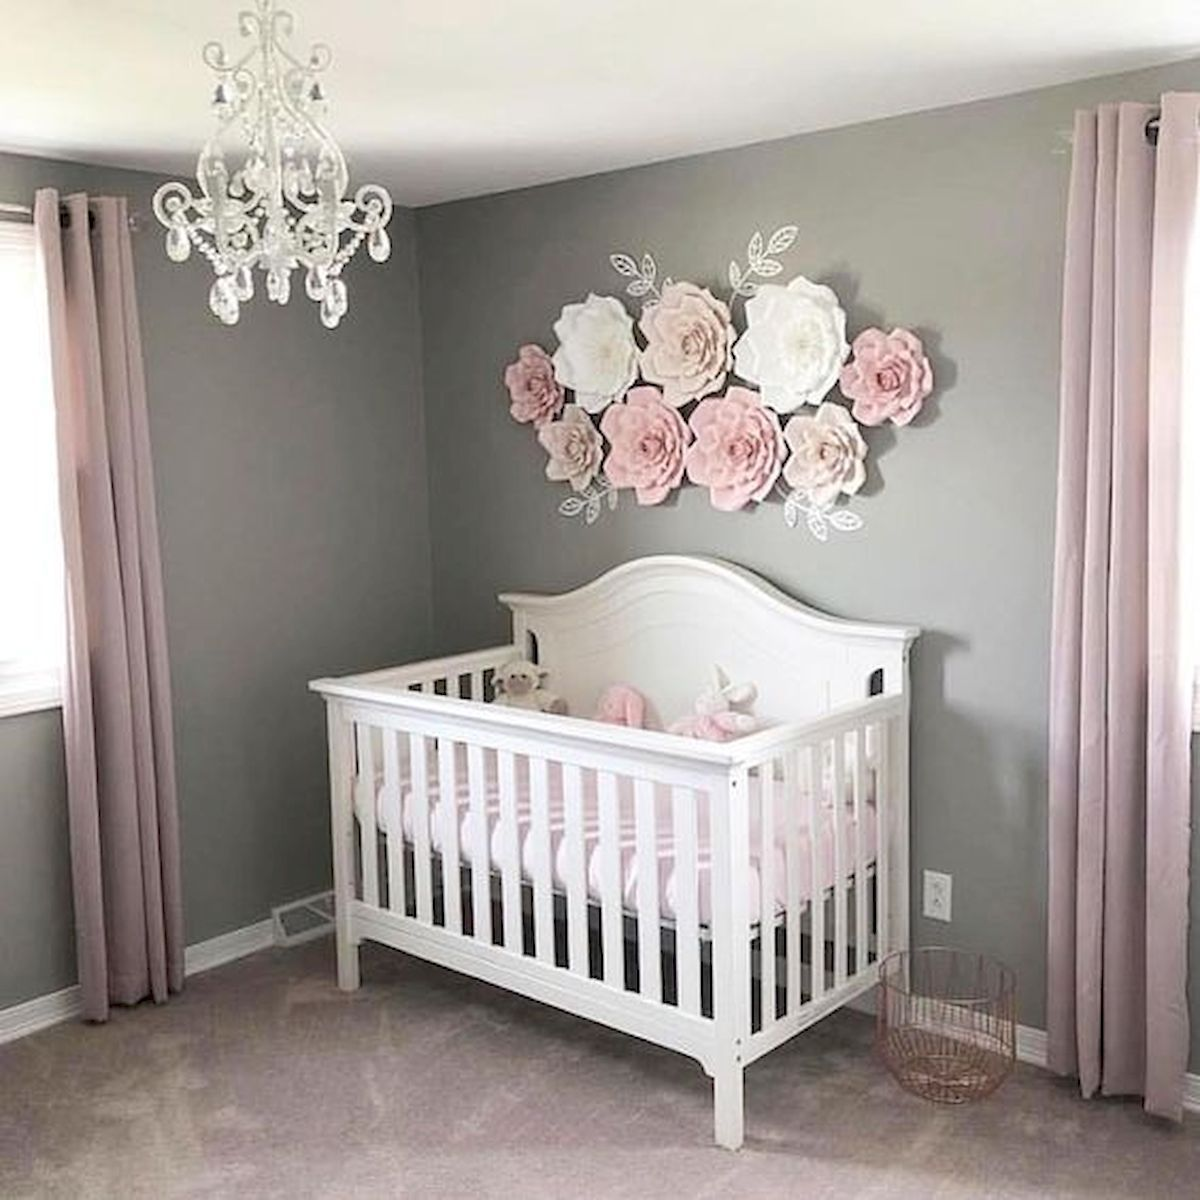 Nice 33 Adorable Nursery Room Ideas For Baby Girl Https Coachdecor Com 33 Adorable Nursery Room Ideas Baby Girl Room Baby Girl Bedroom Baby Girl Nursery Room